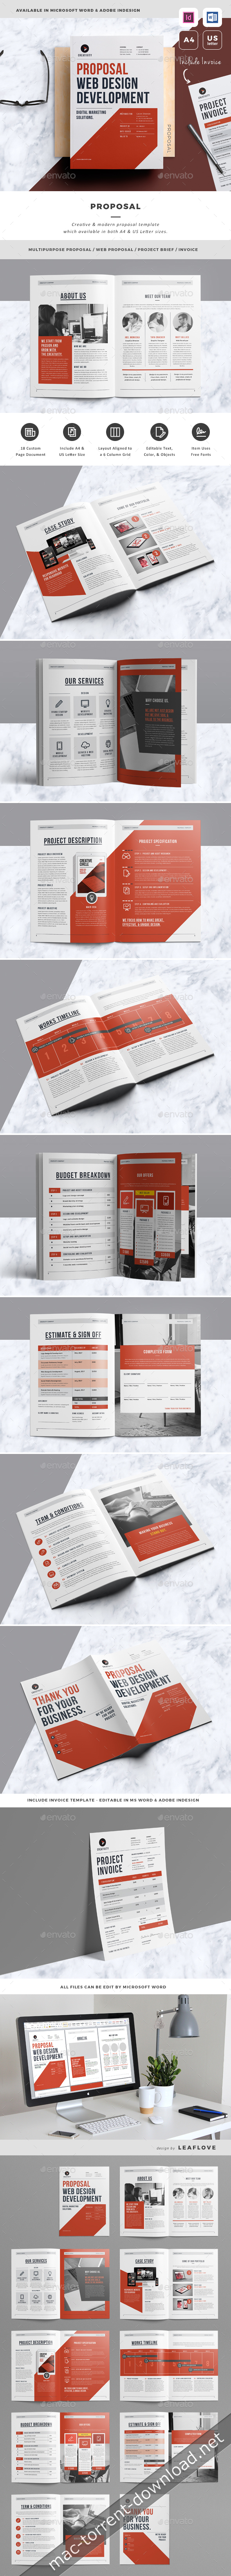 graphicriver_proposal_19509764